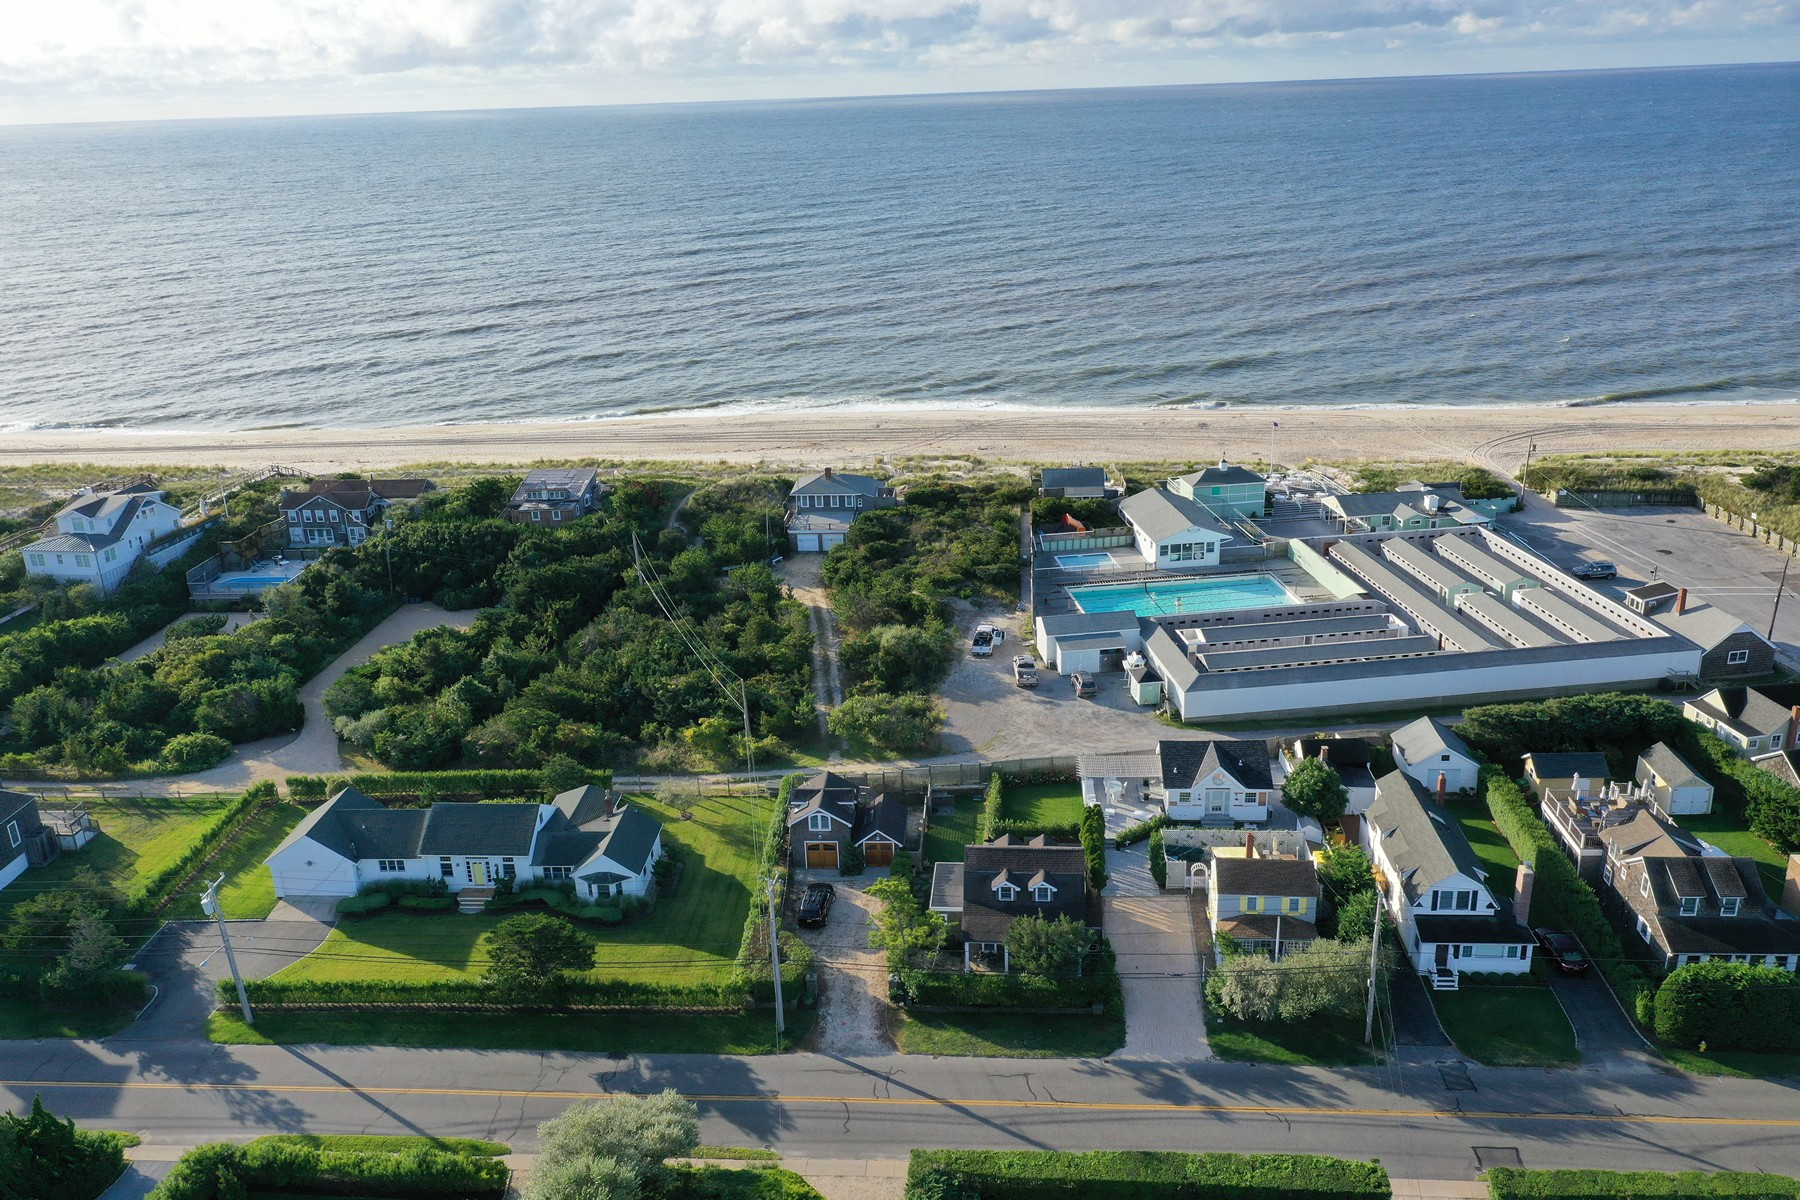 Single Family Homes for Active at Quogue 74 Dune Road Quogue, New York 11959 United States